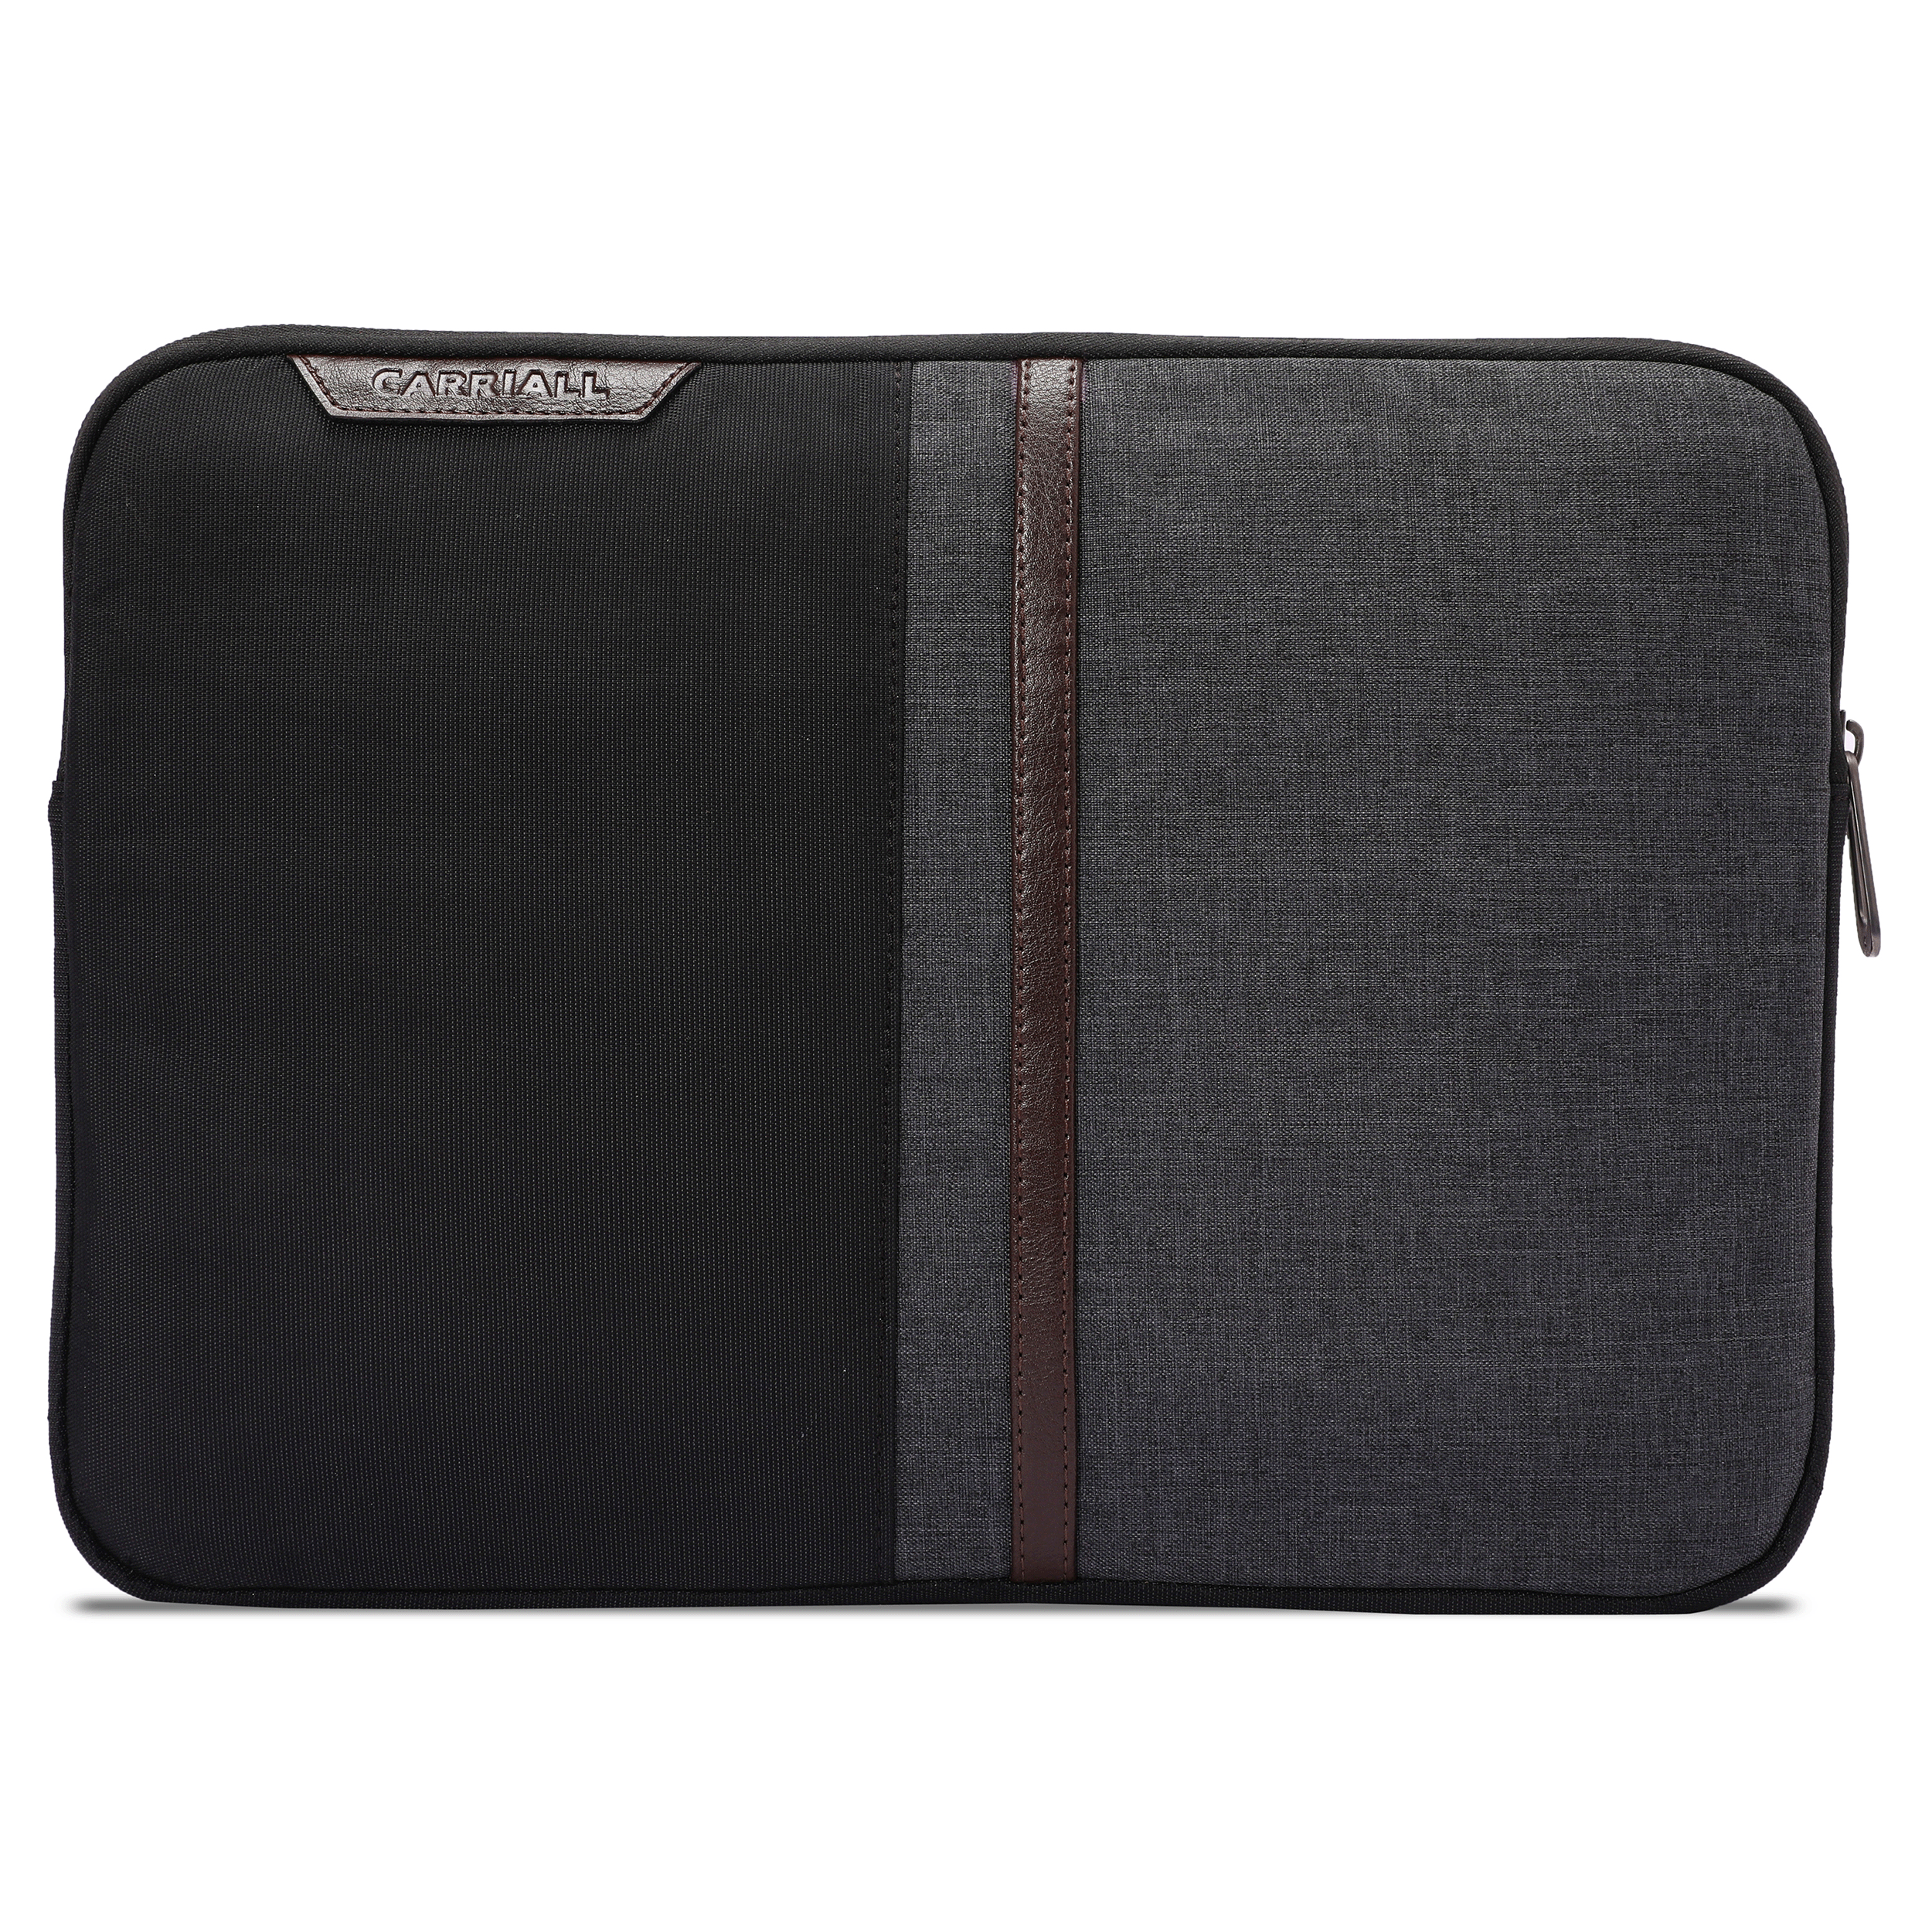 Carriall Suave Durable Fabric Sleeve for 13 inch MacBook (Water Resistant, CALSSUAVEB4, Black)_1